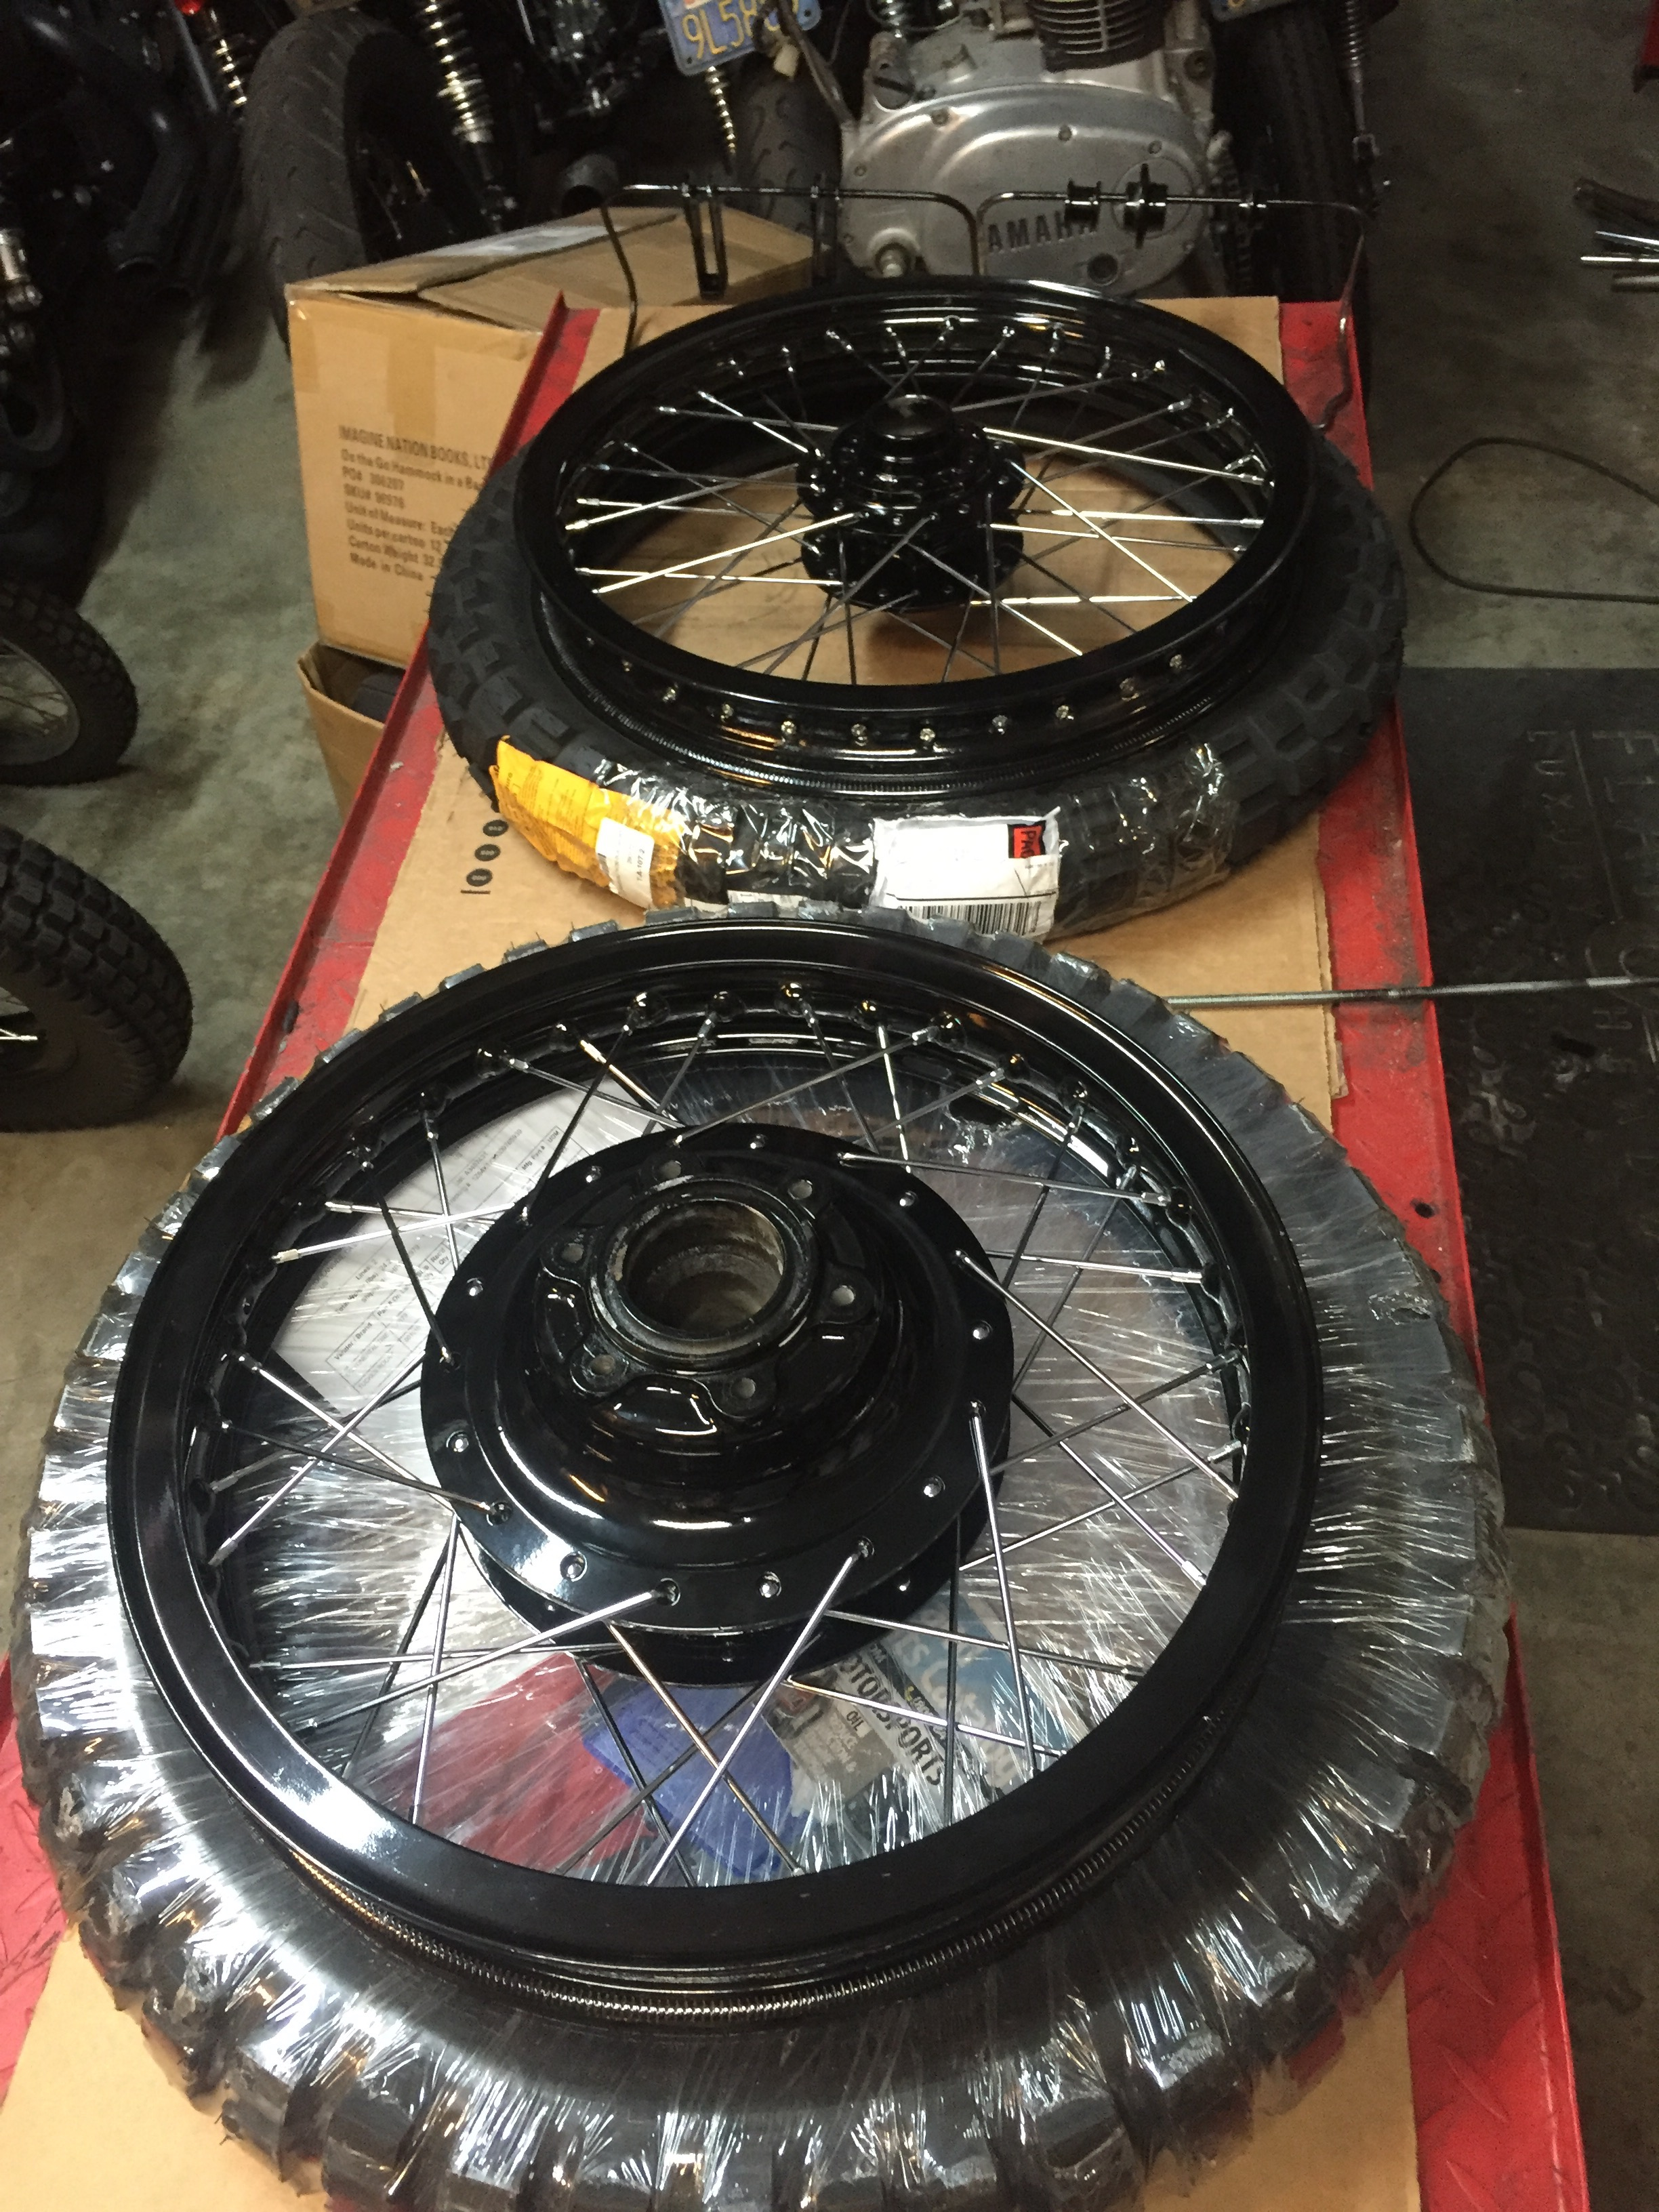 These TKC80 tires from Continental are gonna look mean!! We powder coated the hubs and wheels gloss black and laced them with new chrome spokes before wrapping them with these aggressive treads.